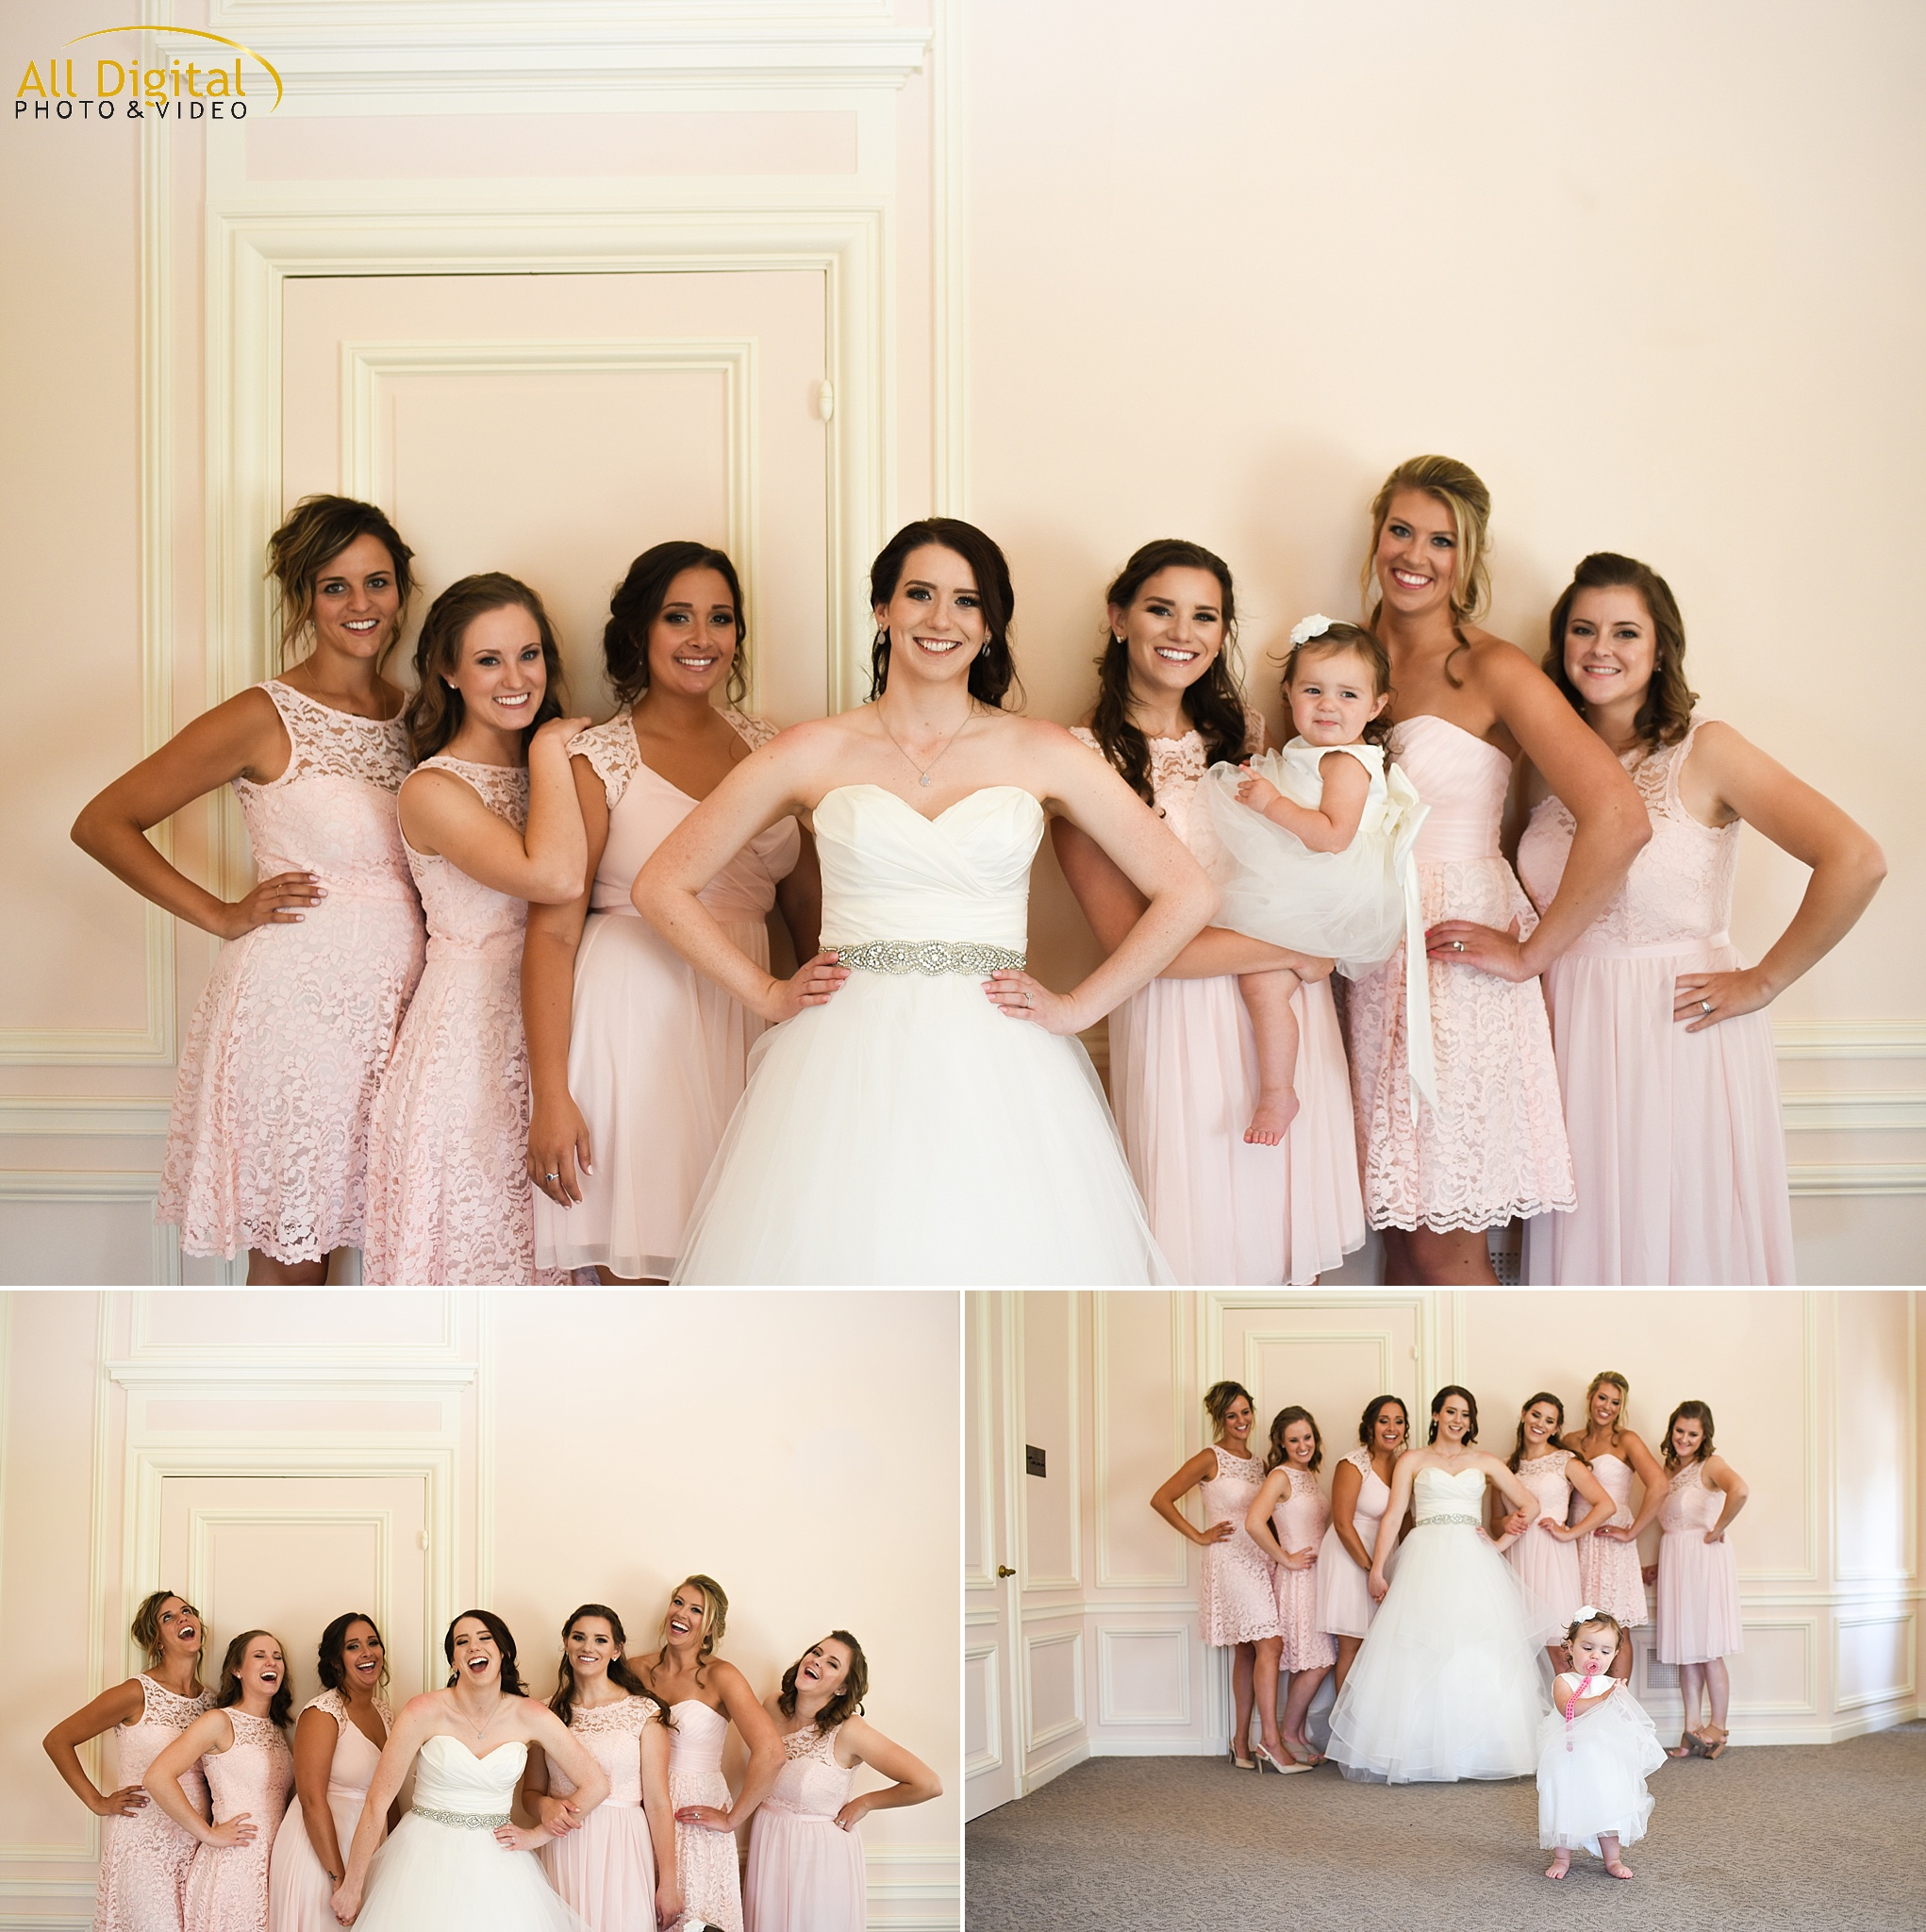 Bride & Bridesmaids Photos at the Highlands Ranch Mansion.